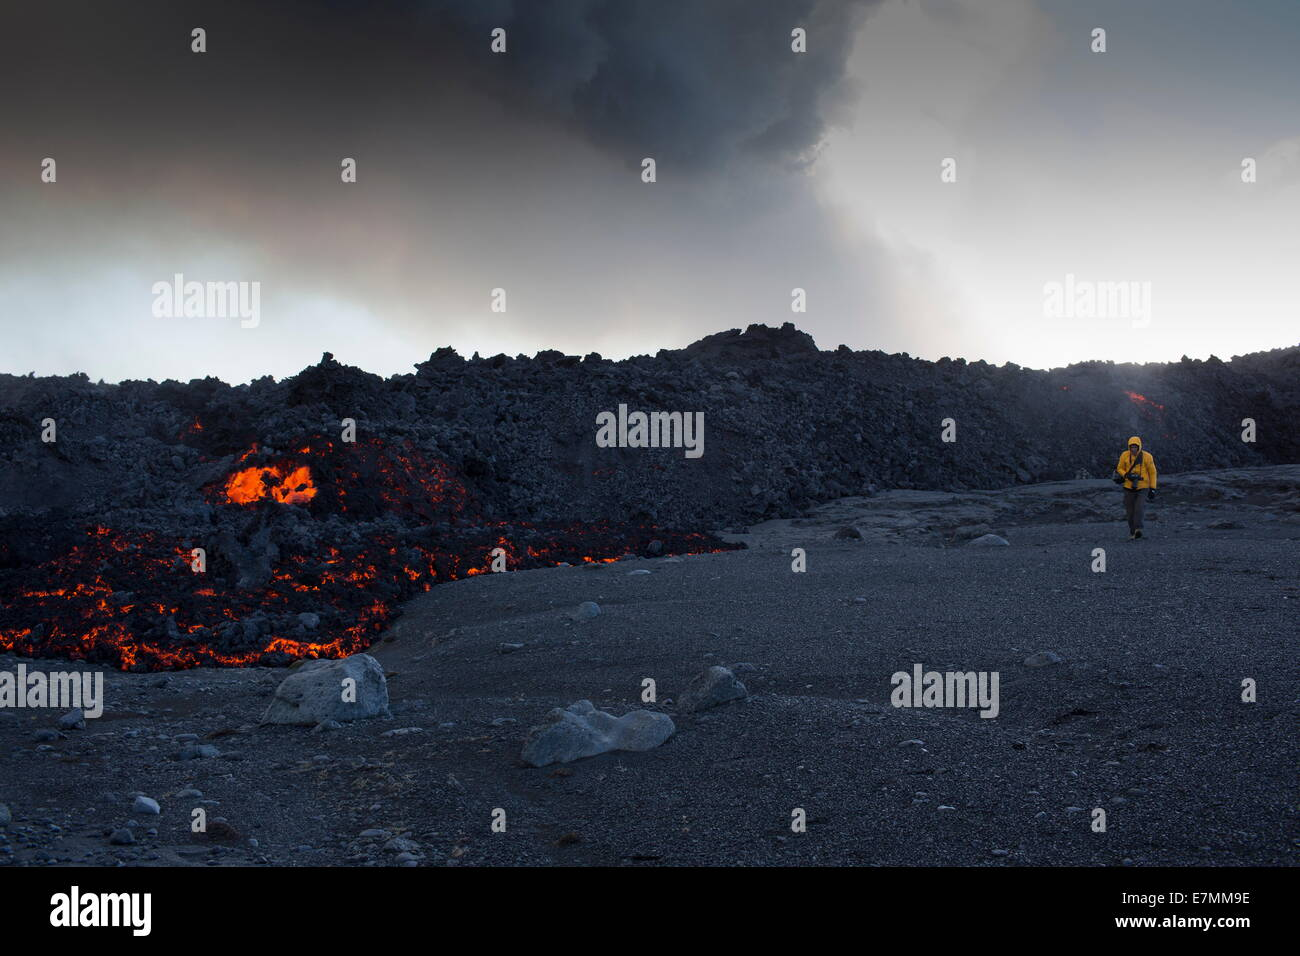 Volcano eruption, Holuhraun, north east Iceland, man walking very closely besides the glowing lava - Stock Image